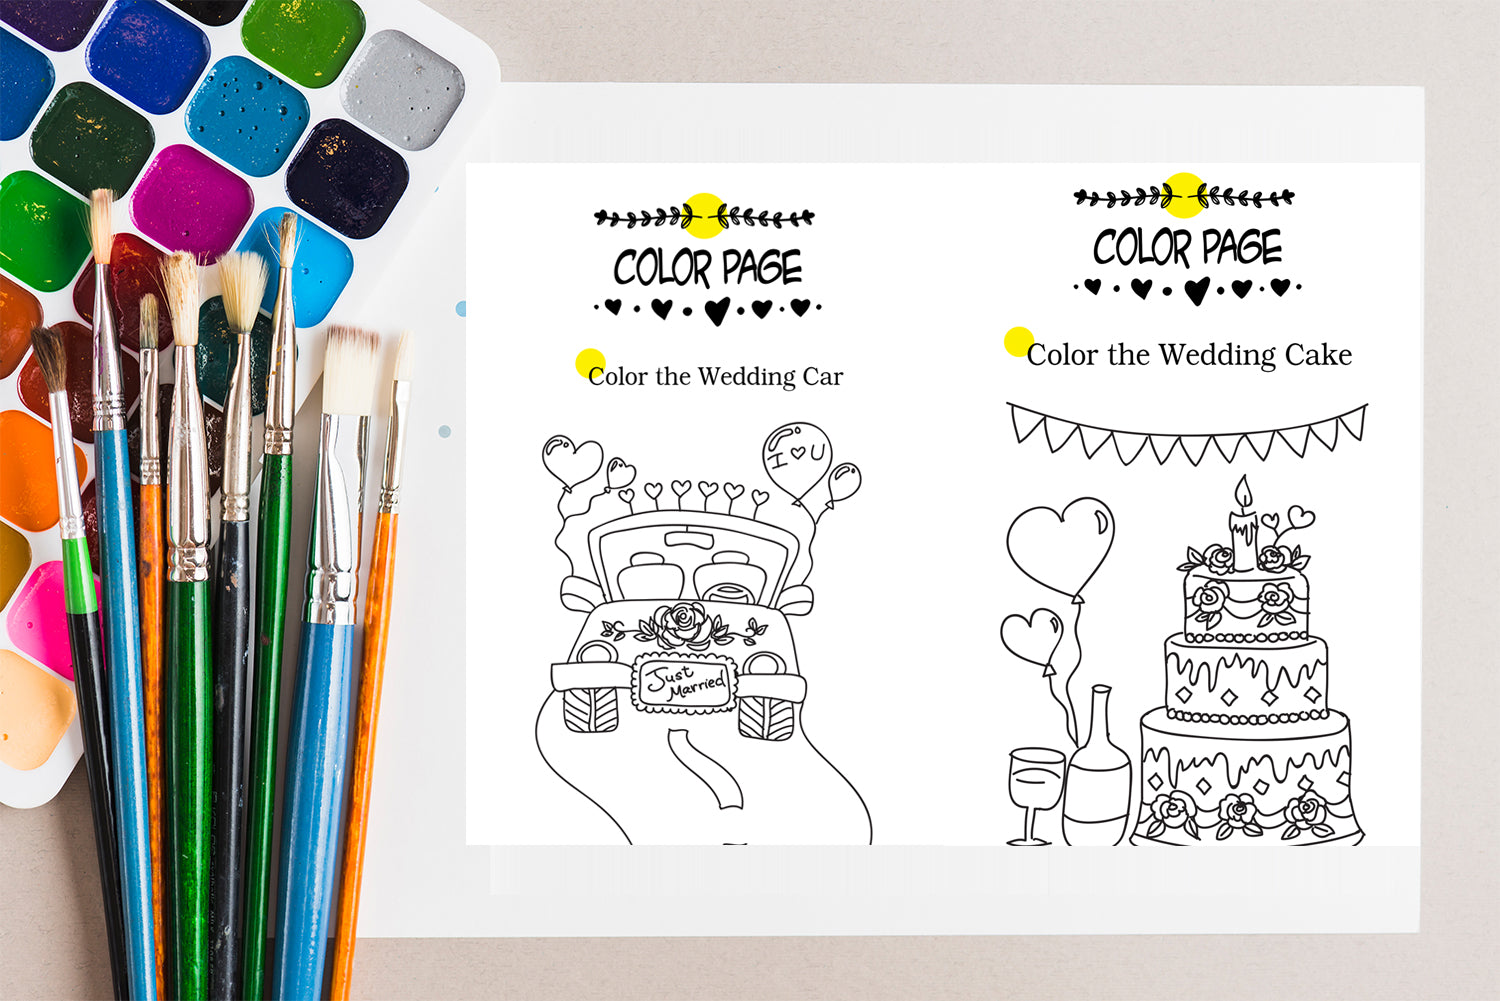 Kids wedding activity coloring book, wedding activities for kids